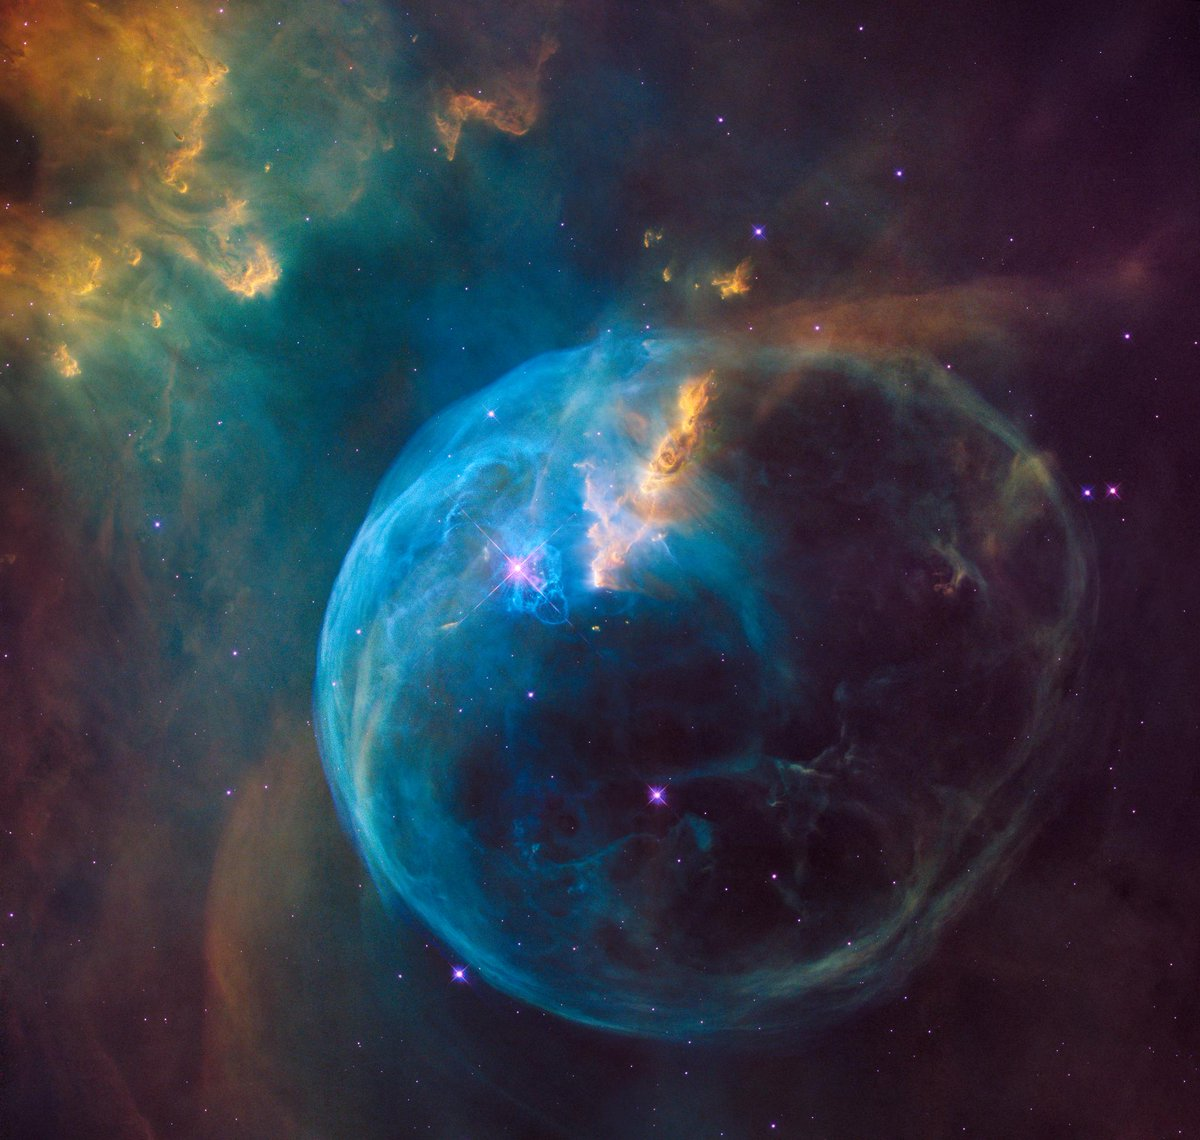 Do you see the star to the left of centre?  Gas on the star gets so hot that it escapes into space and sweeps up cold interstellar gas in front of it, creating the outer edge of the 'bubble'.   This is Bubble Nebula, or NGC 7635, courtesy of the Hubble Telescope.